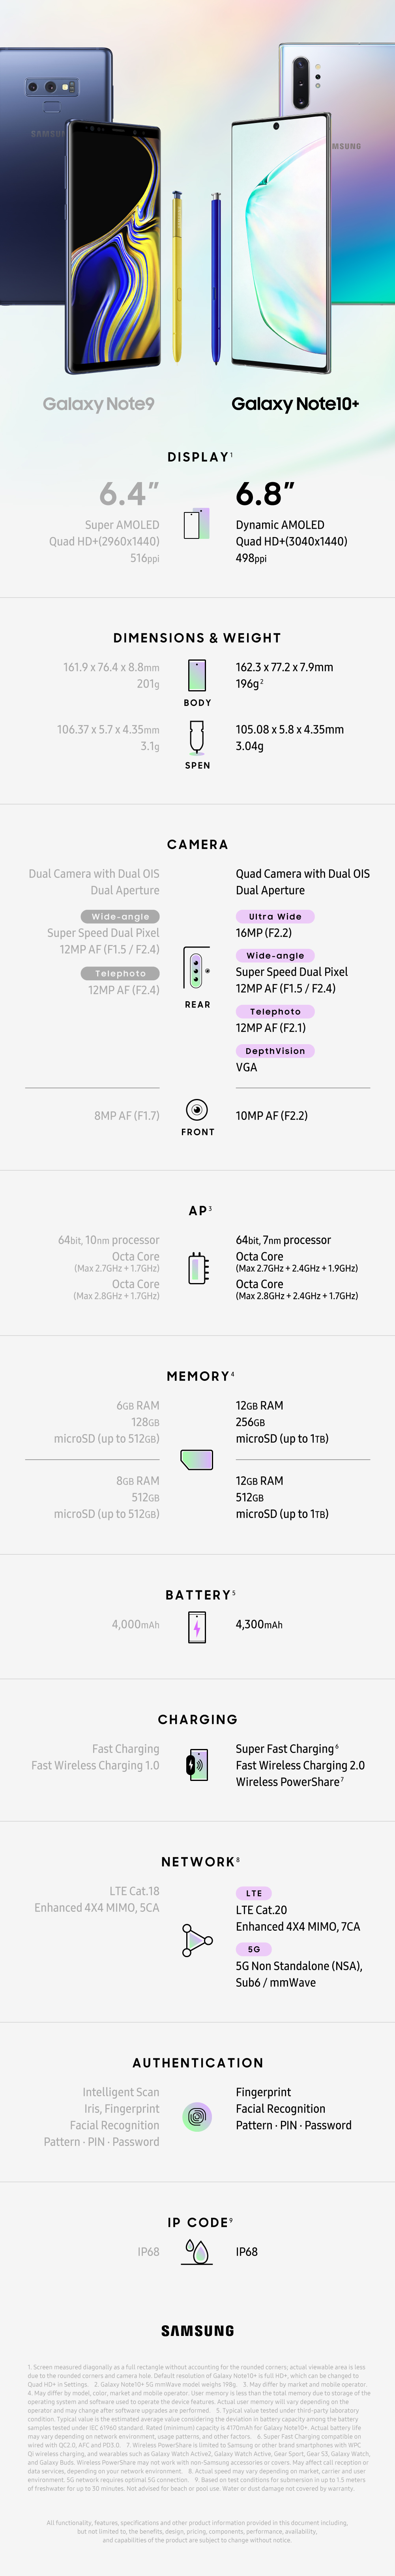 Infographic_Galaxy Note10+ Galaxy Note9 Spec Comparison